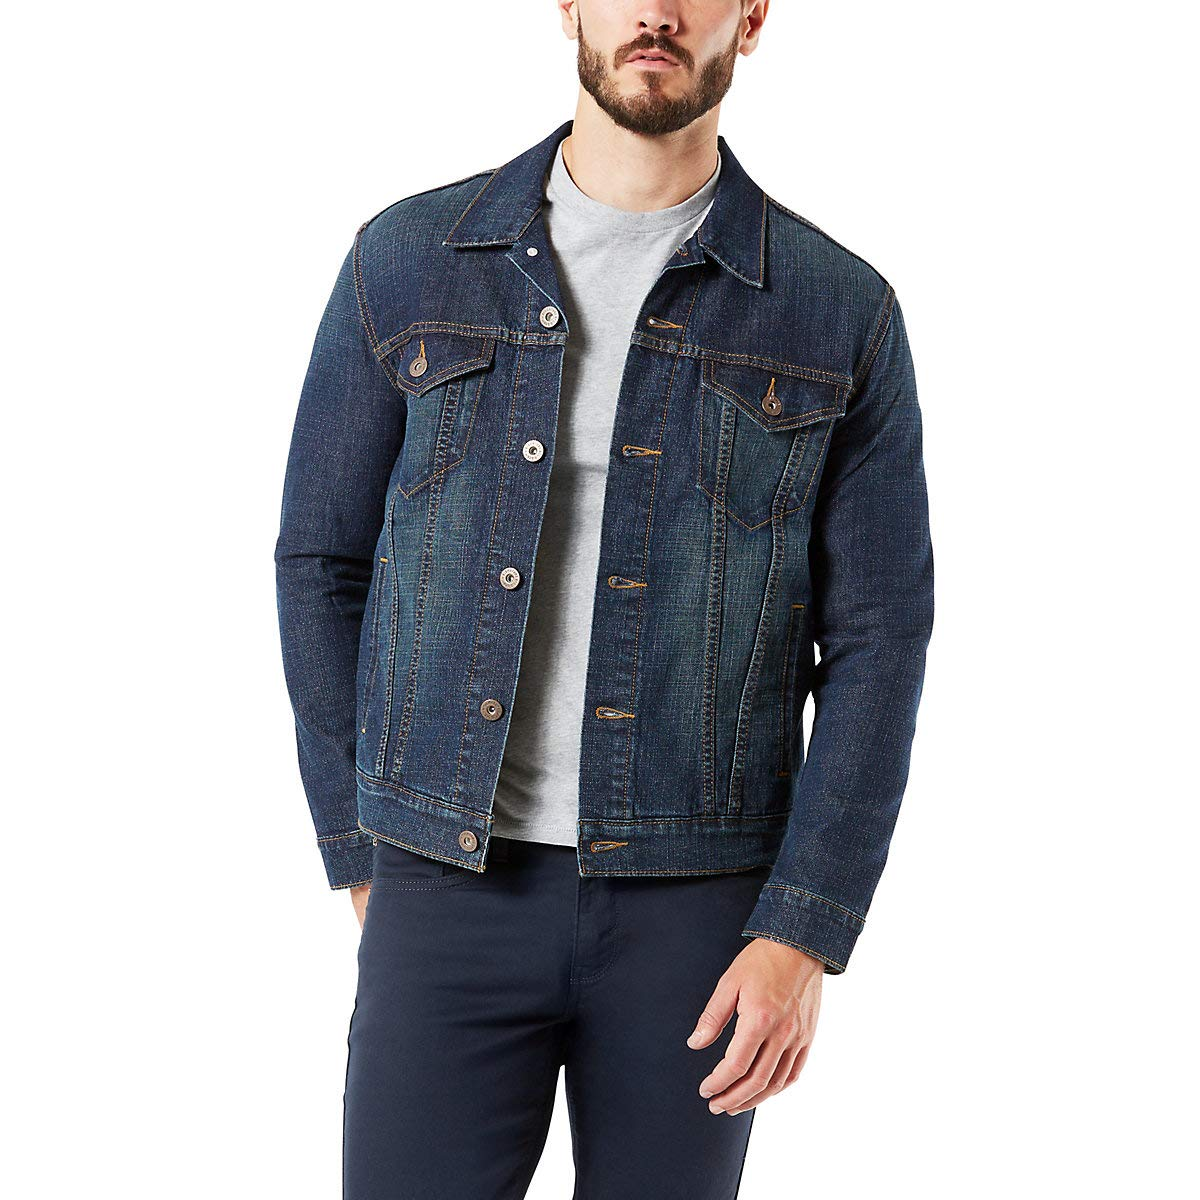 Signature by Levi Strauss & Co Men's Signature Trucker Jacket, Rebel, M by Signature by Levi Strauss & Co. Gold Label